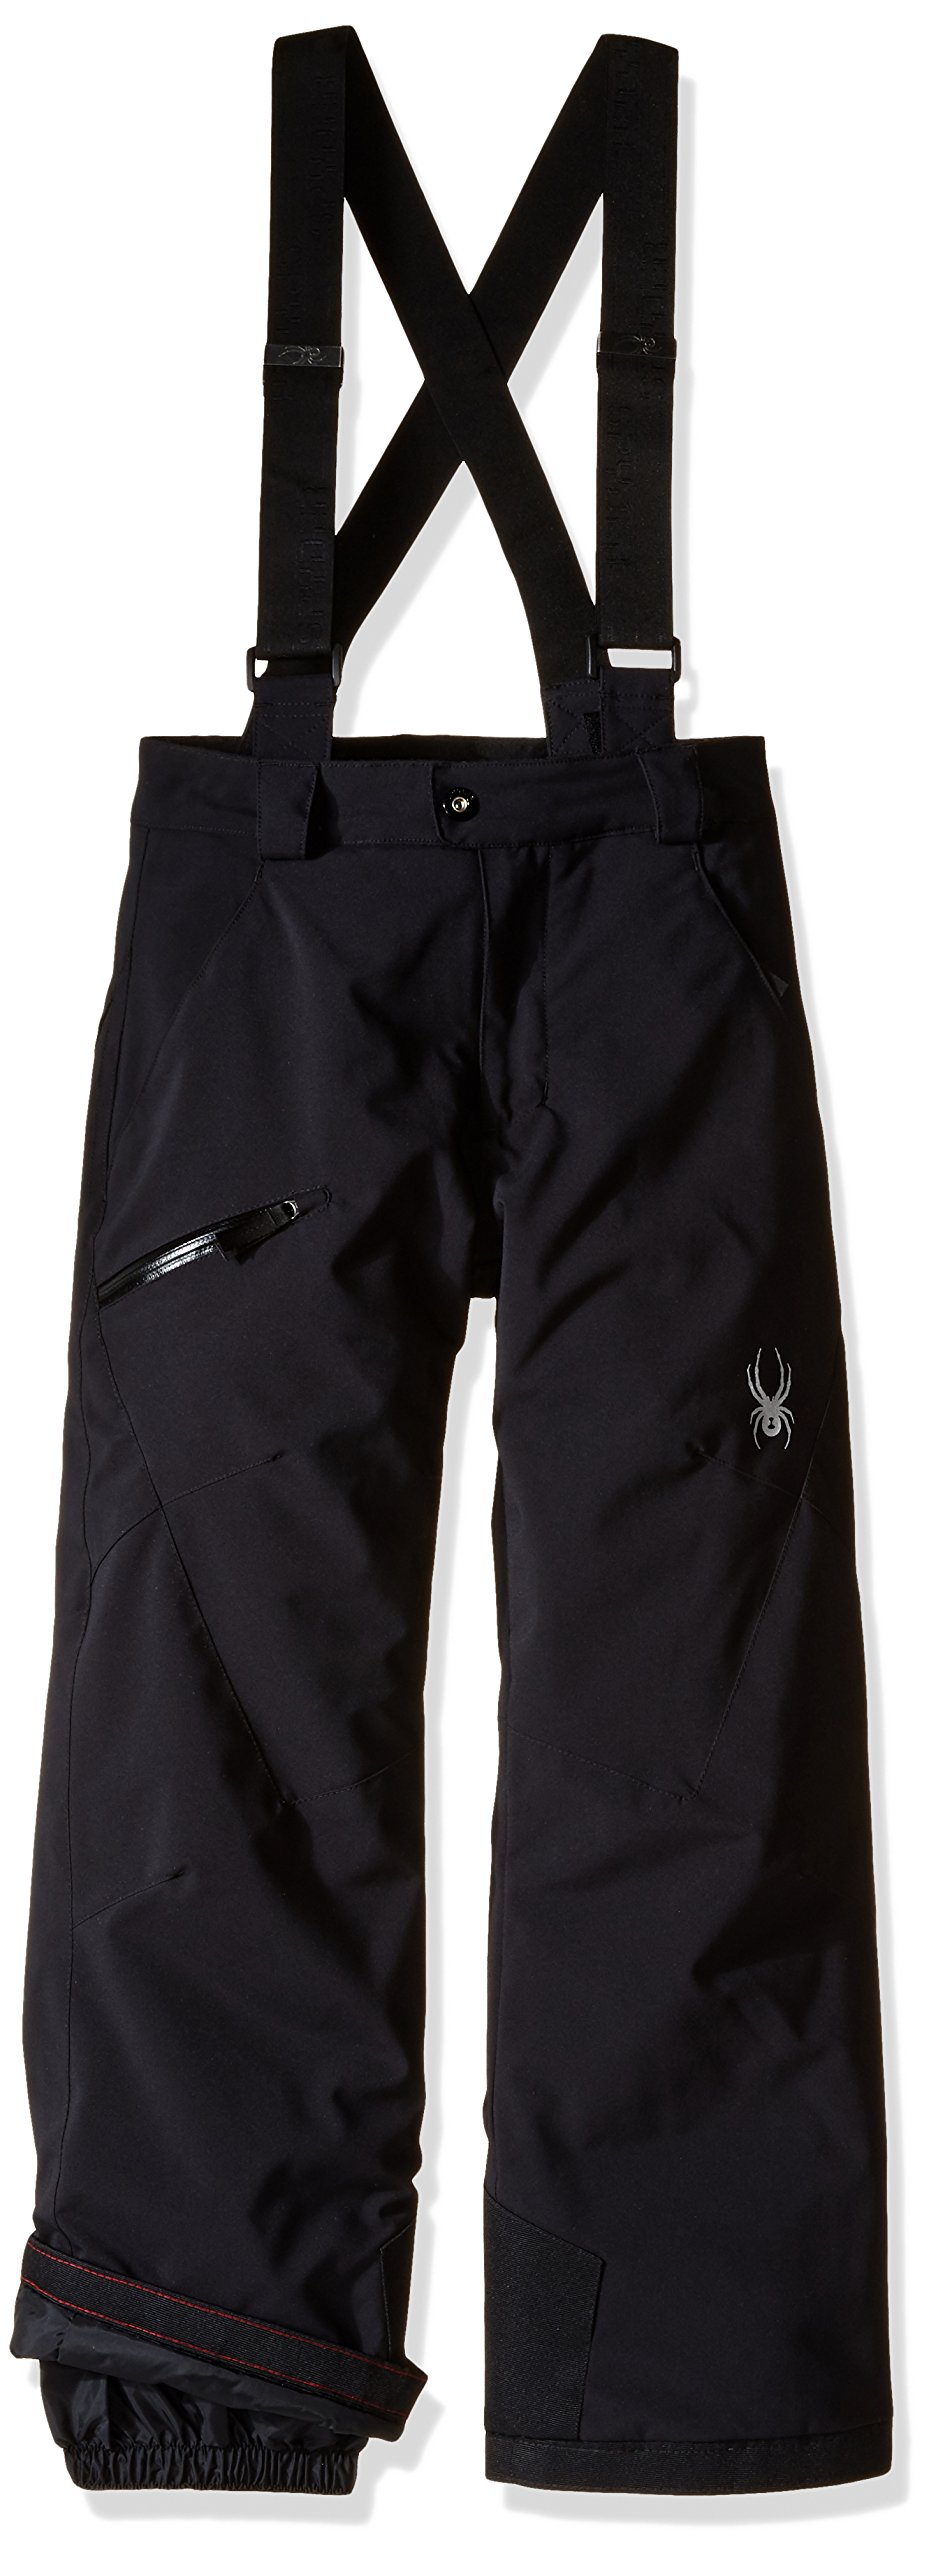 Spyder Boys Propulsion Pants, Size 18, Black by Spyder